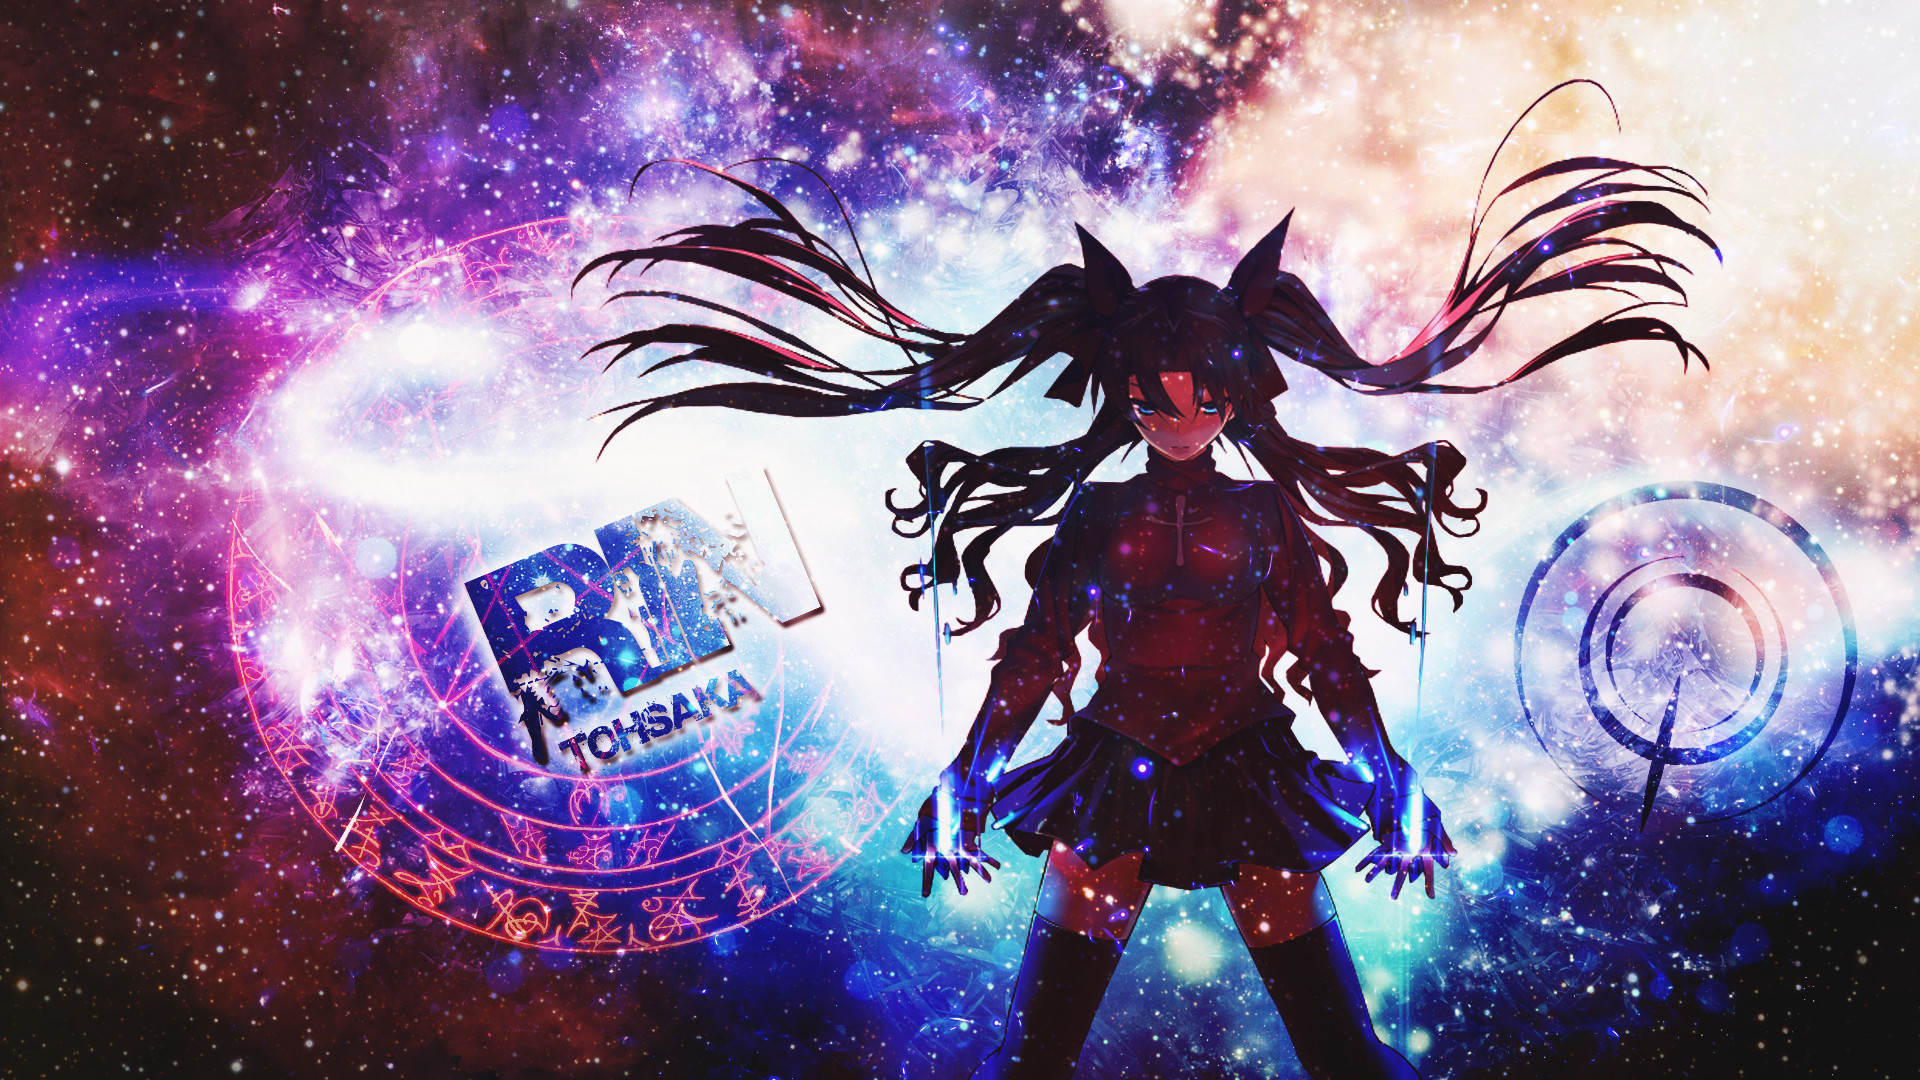 1920x1080 Anime - Fate/Stay Night: Unlimited Blade Works Rin Tohsaka Bakgrund